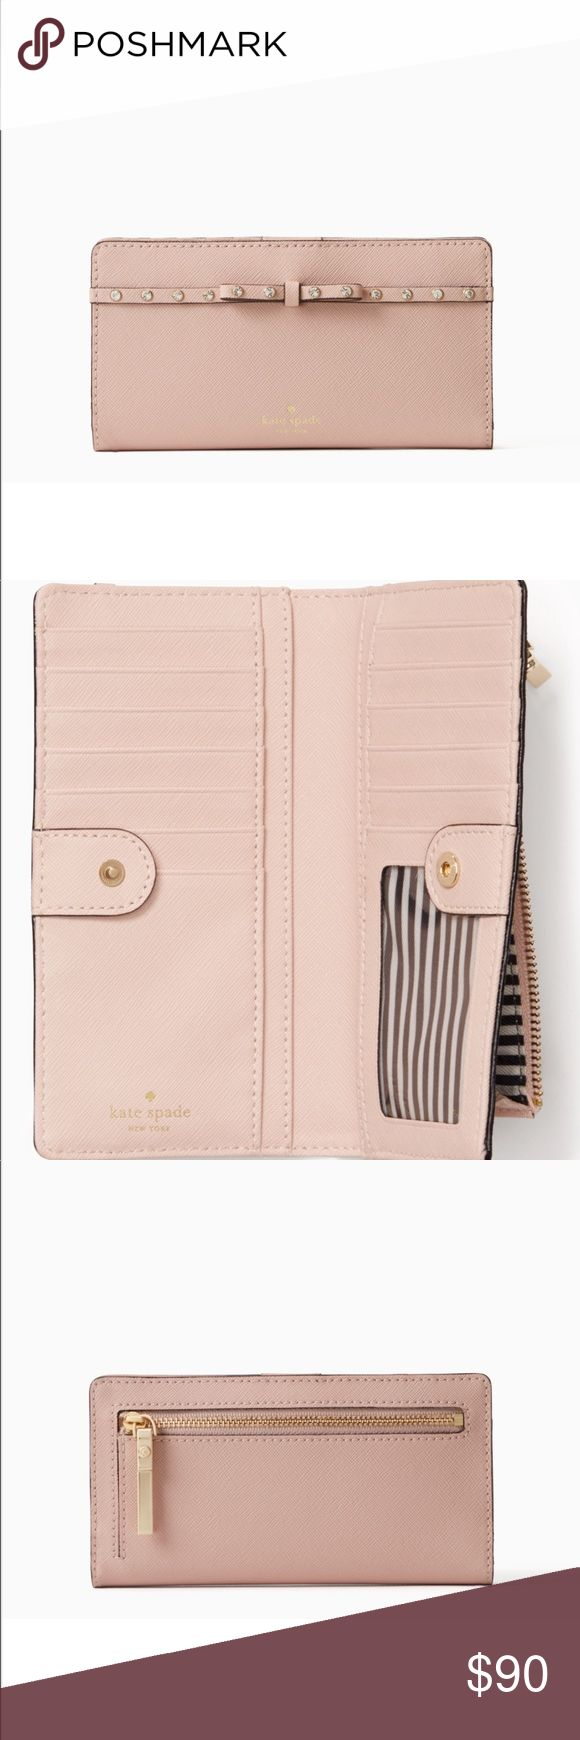 Kate Spade Elliott Street Stacy Wallet New with tags, light pink, send me offers (: kate spade Bags Wallets